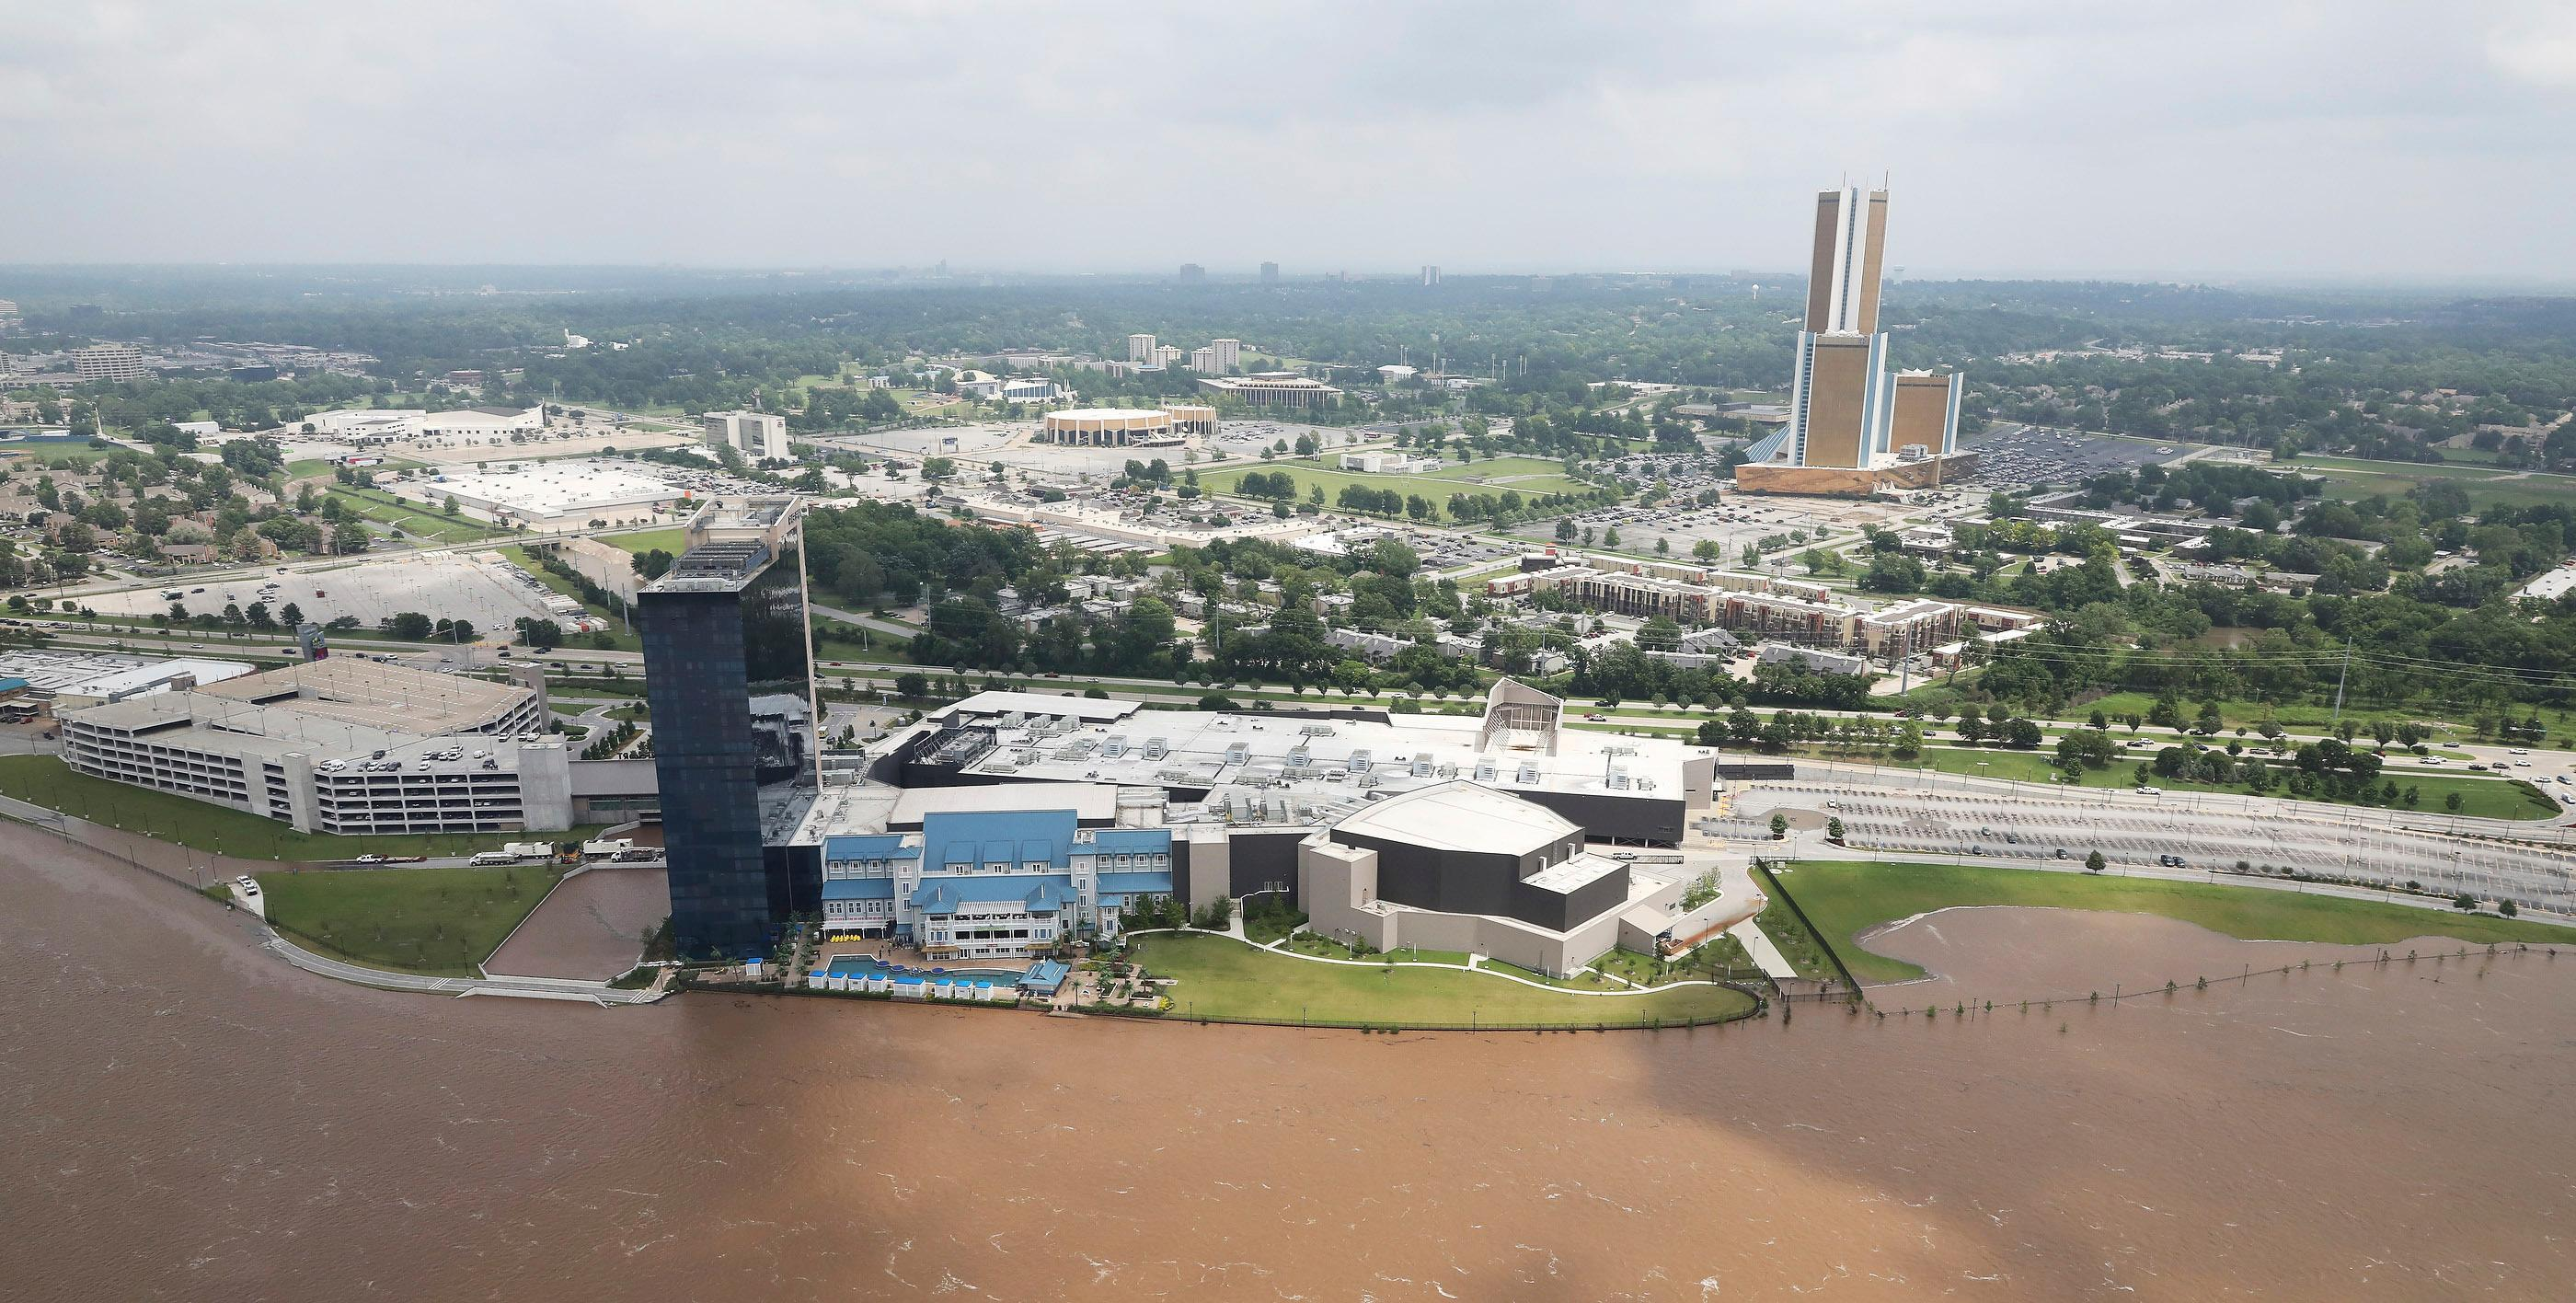 Flood waters encroach the River Spirit Hotel and Casino in Tulsa, Okla., on Wednesday, May 22, 2019. Authorities on Wednesday encouraged people living along the Arkansas River in the Tulsa suburb of Bixby and low-lying areas near creeks both north and south of Okmulgee, about 35 miles (56 kilometers) south of Tulsa. to leave their homes. (Tom Gilbert/Tulsa World via AP)